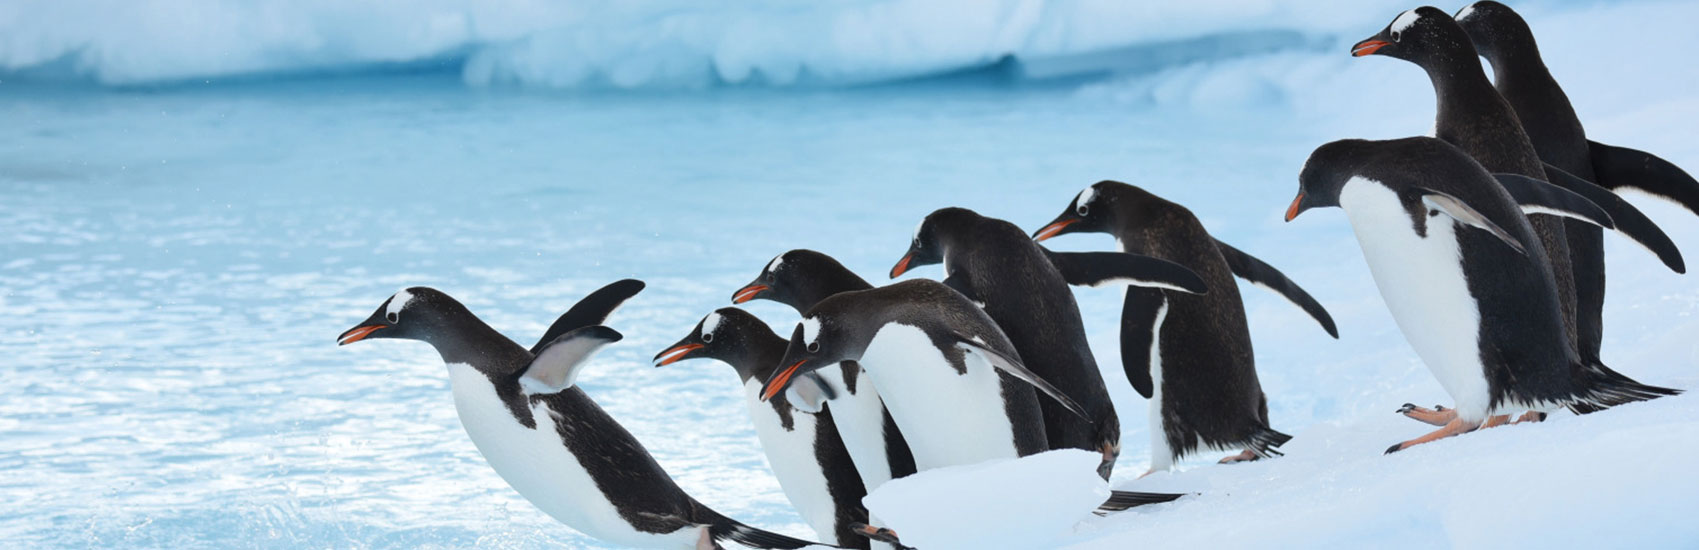 Air Credit Offer with Ponant to Antarctica 4